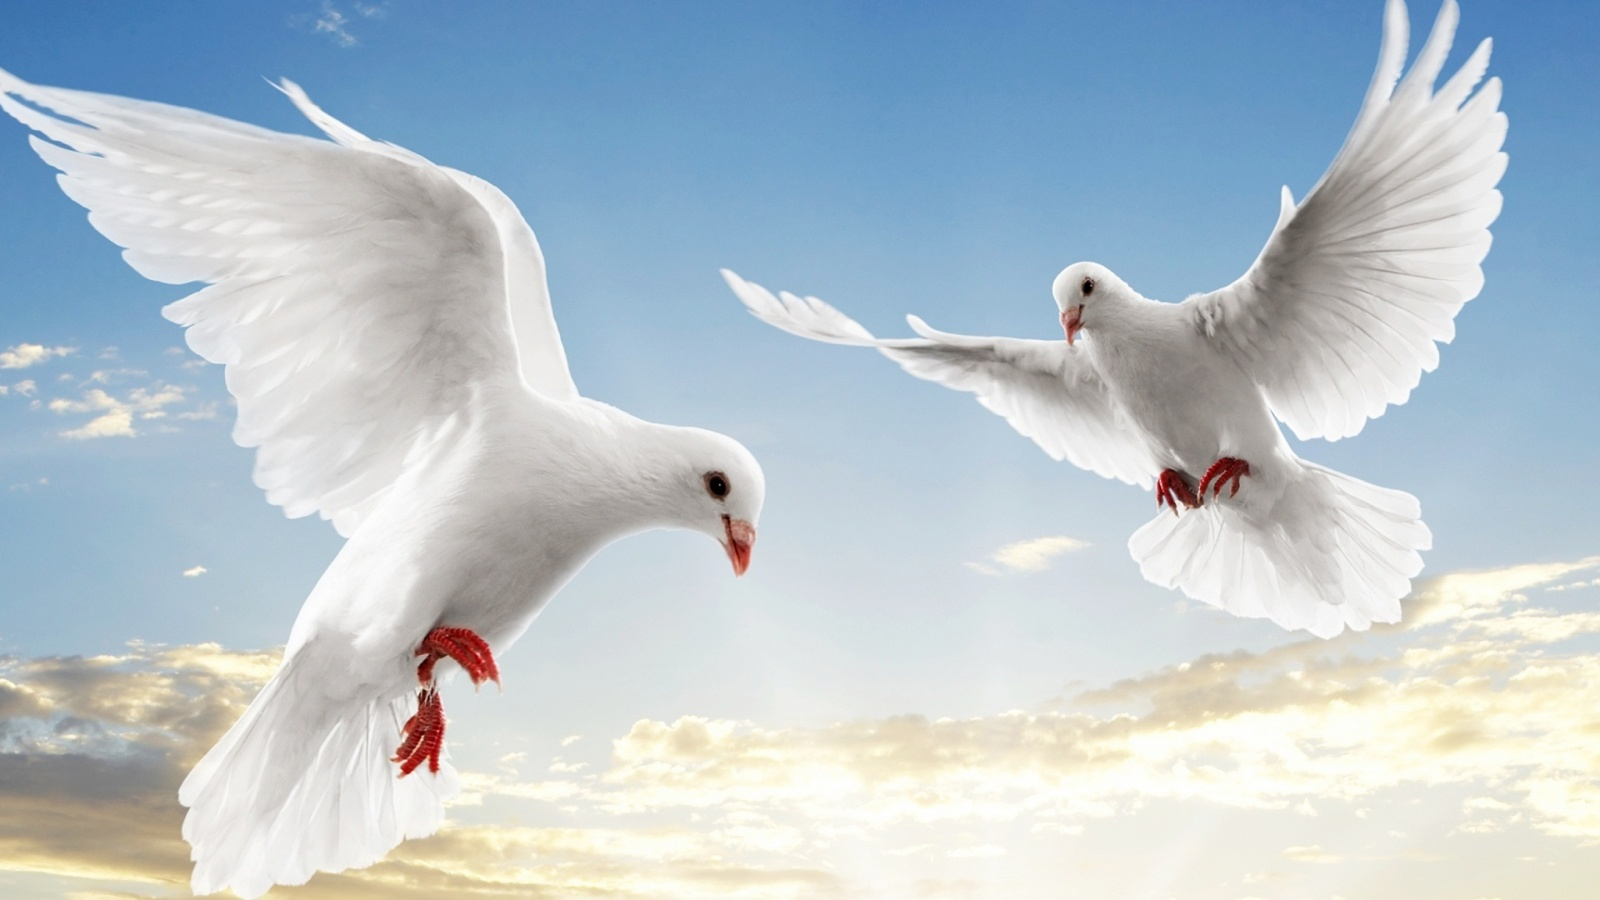 Description: The Wallpaper above is White doves retina Wallpaper in Resolution 1600x900. Choose your Resolution and Download White doves retina Wallpaper